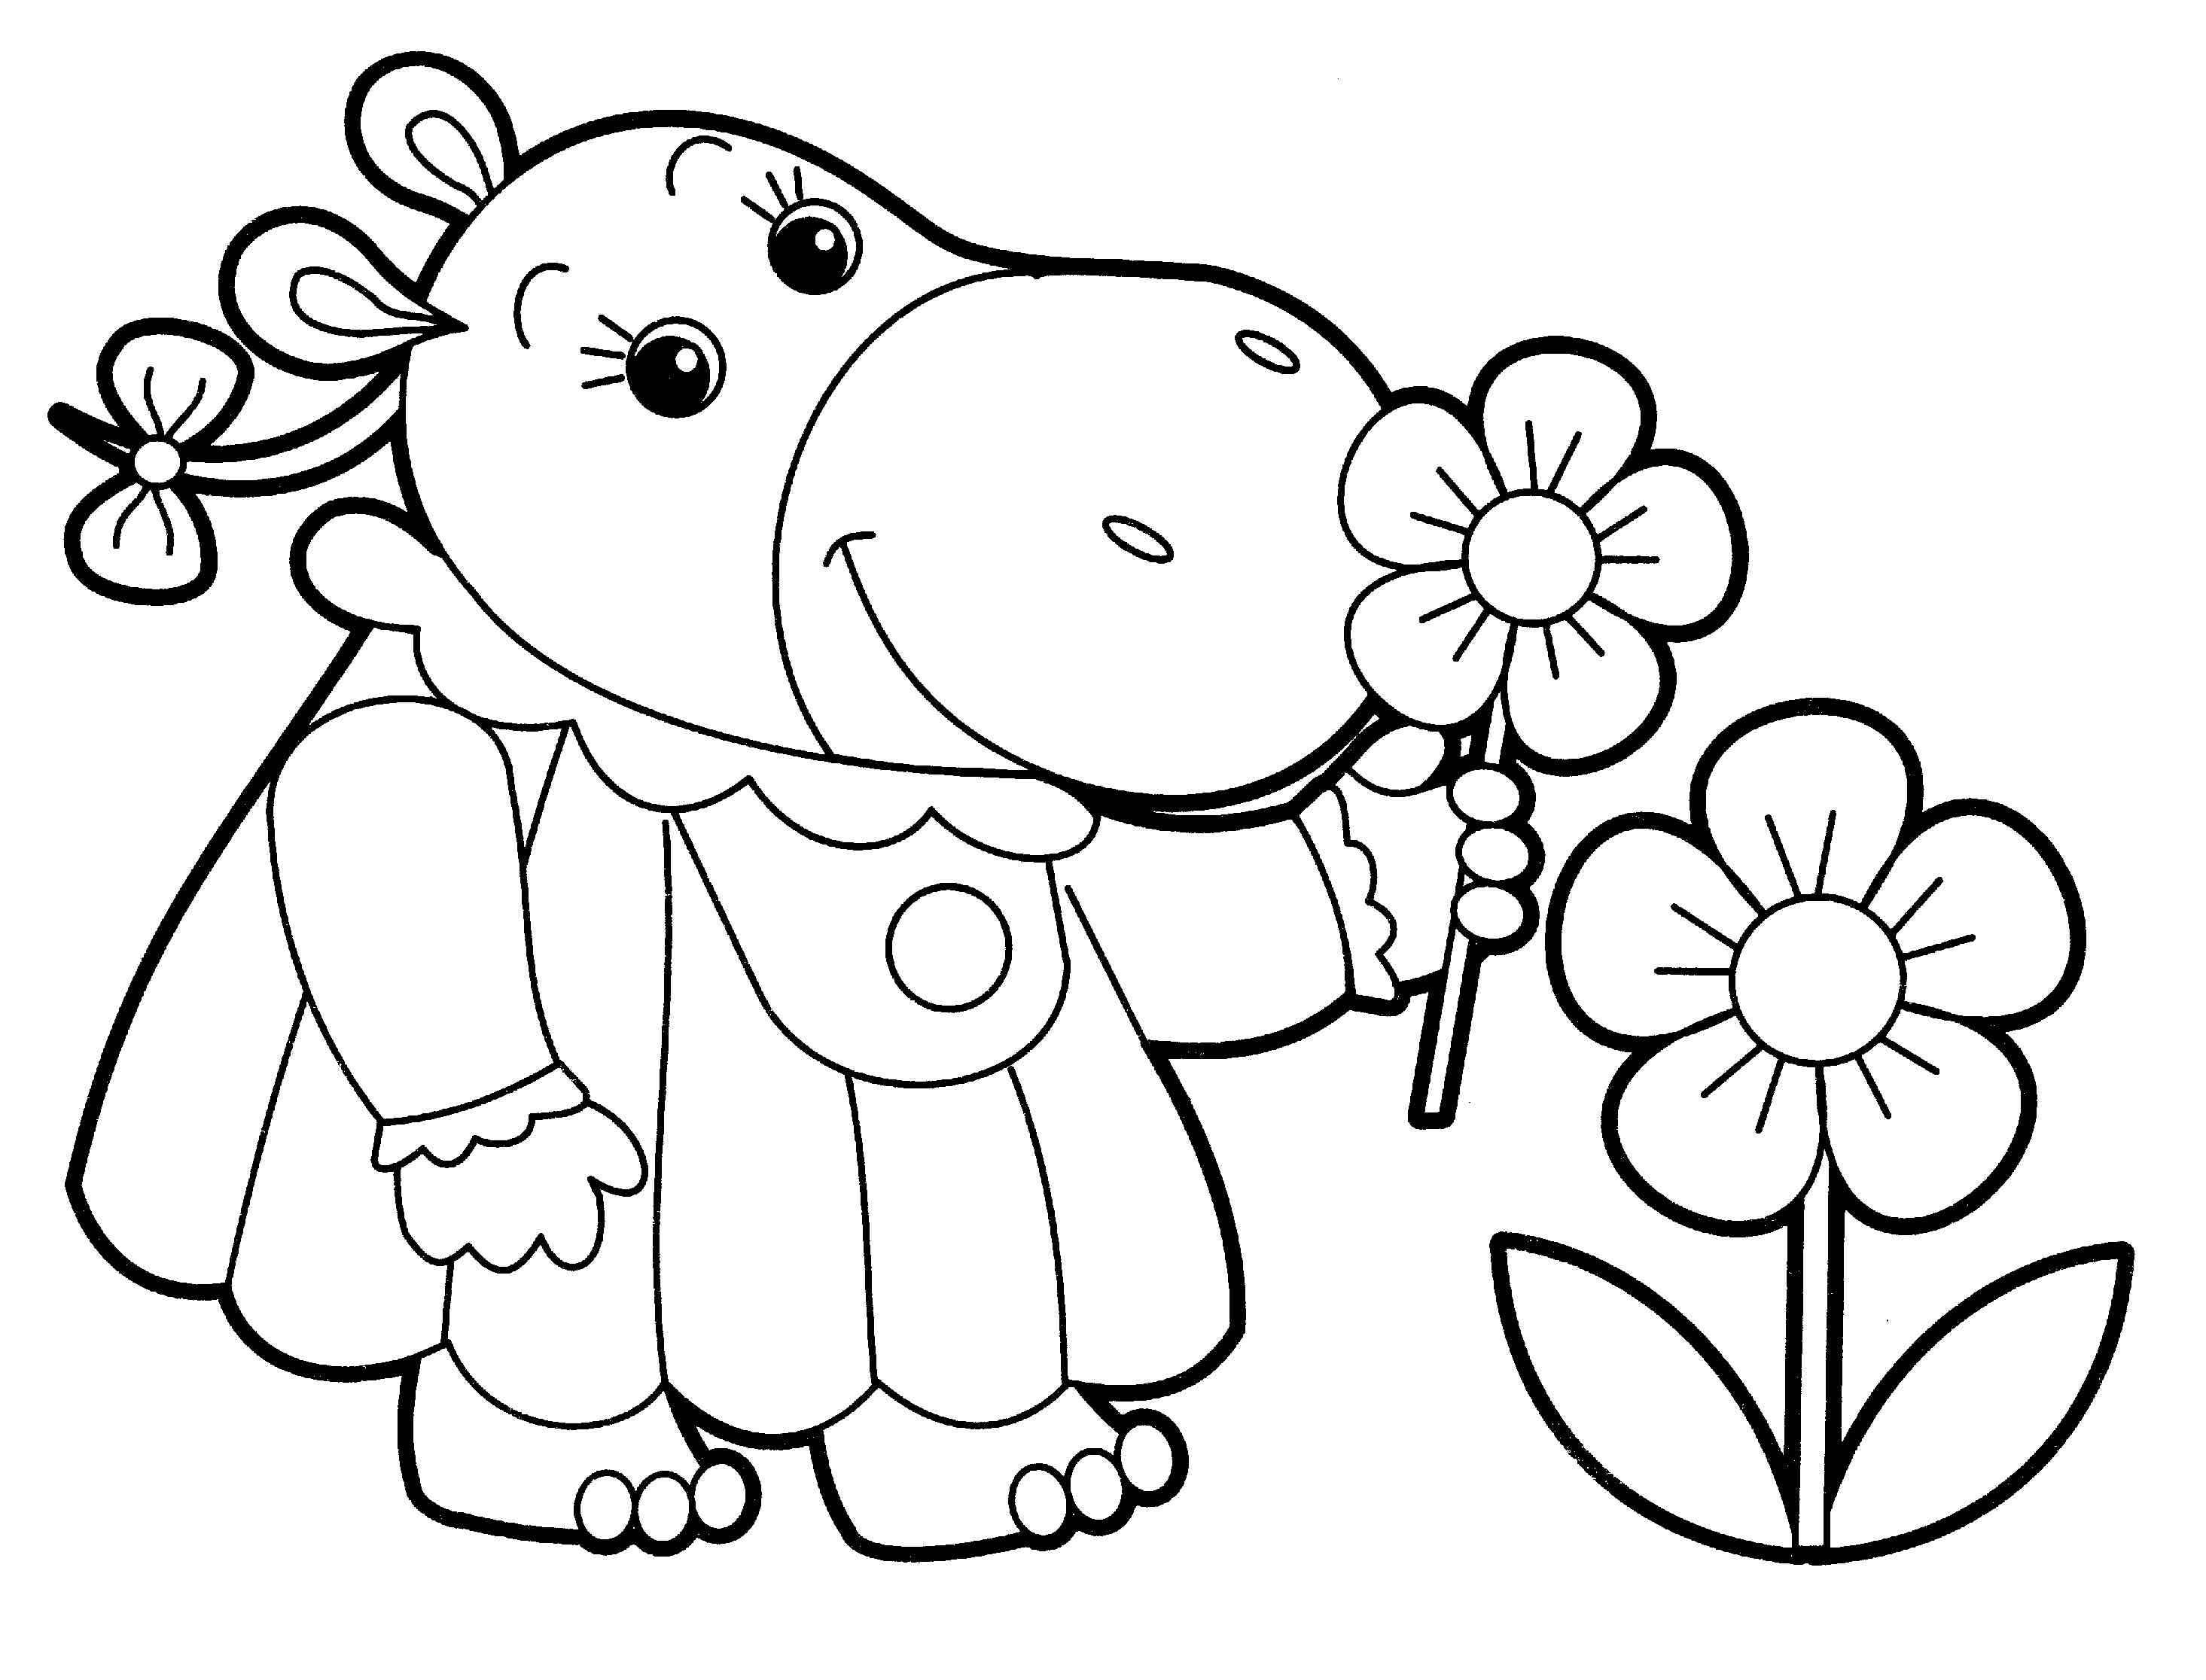 Lol Surprise Doll Coloring Pages at GetColorings.com ...